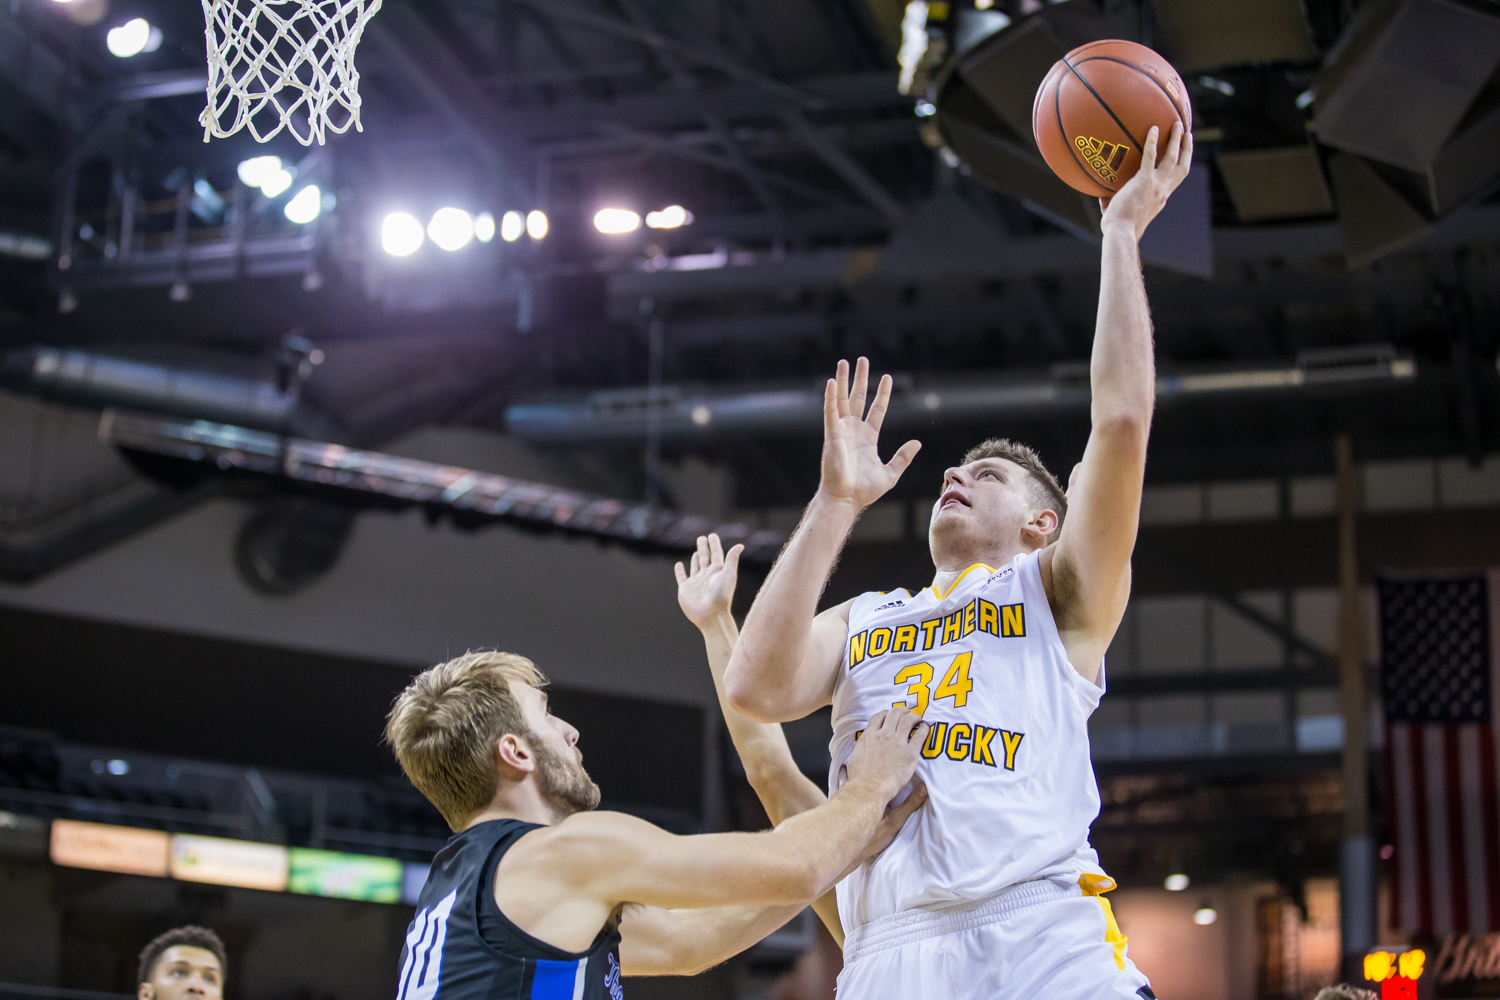 Drew McDonald (34) goes up for a shot during the game against Thomas More. McDonald had 14 points during the game.